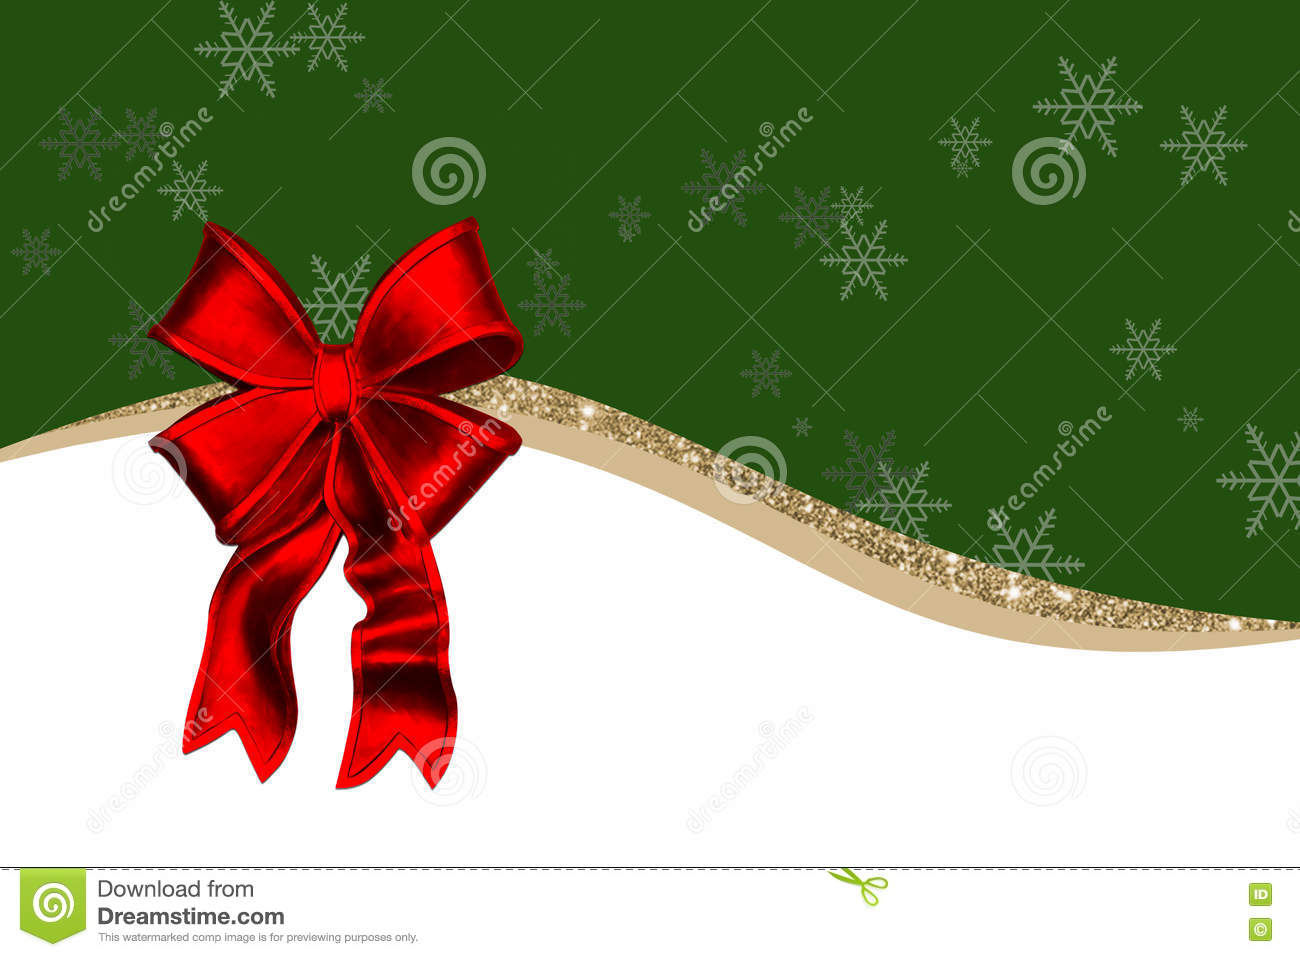 Green Christmas Bow Background Graphics: Christmas Card With Red Decorations, Bow, Golden Ribbon